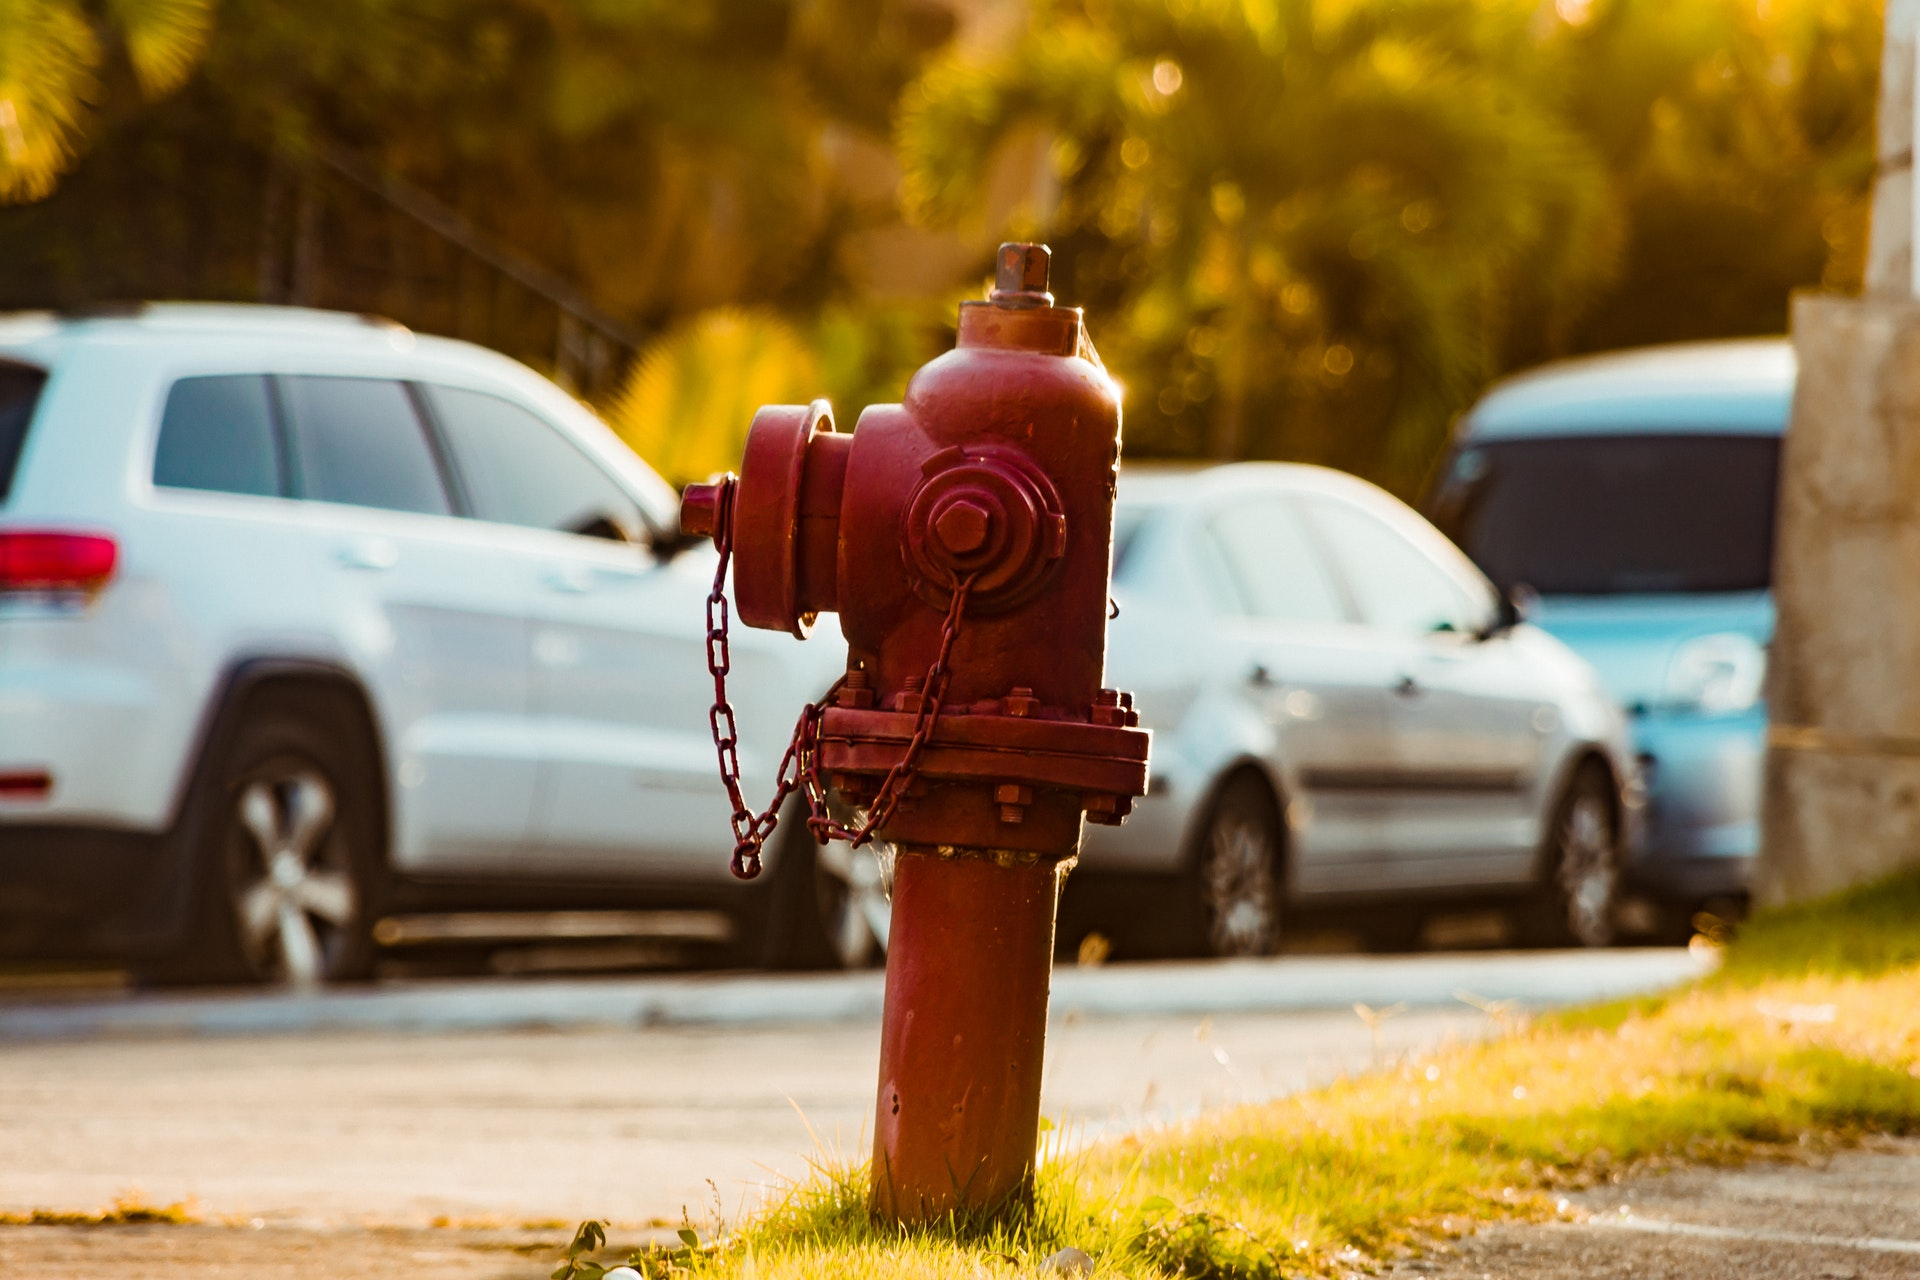 Fire Hydrant - Ohmtech Fire Protection LTD